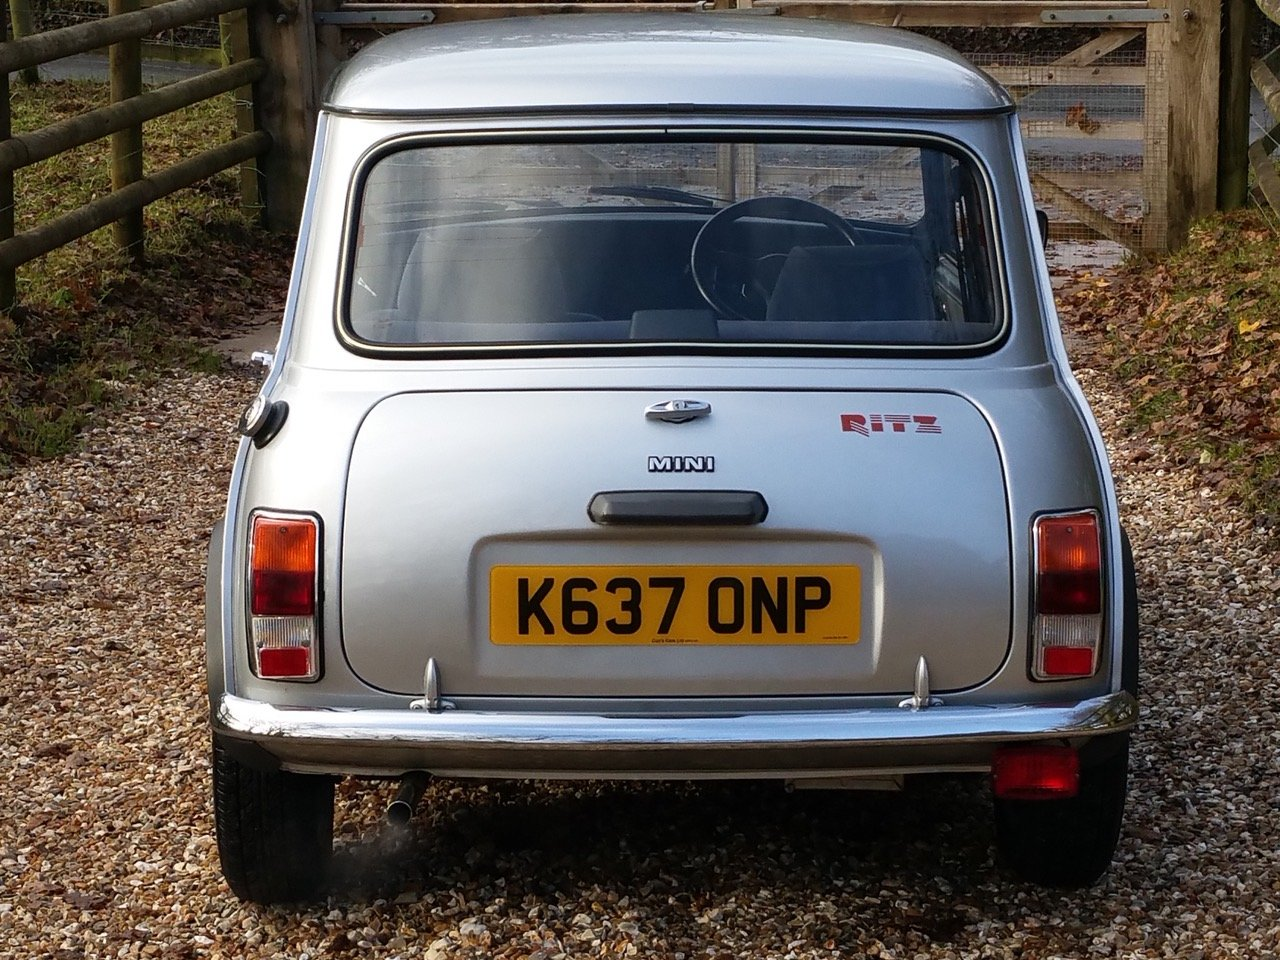 1992 'Time Warp' Mini Ritz On Just 3820 Miles From New SOLD (picture 3 of 10)